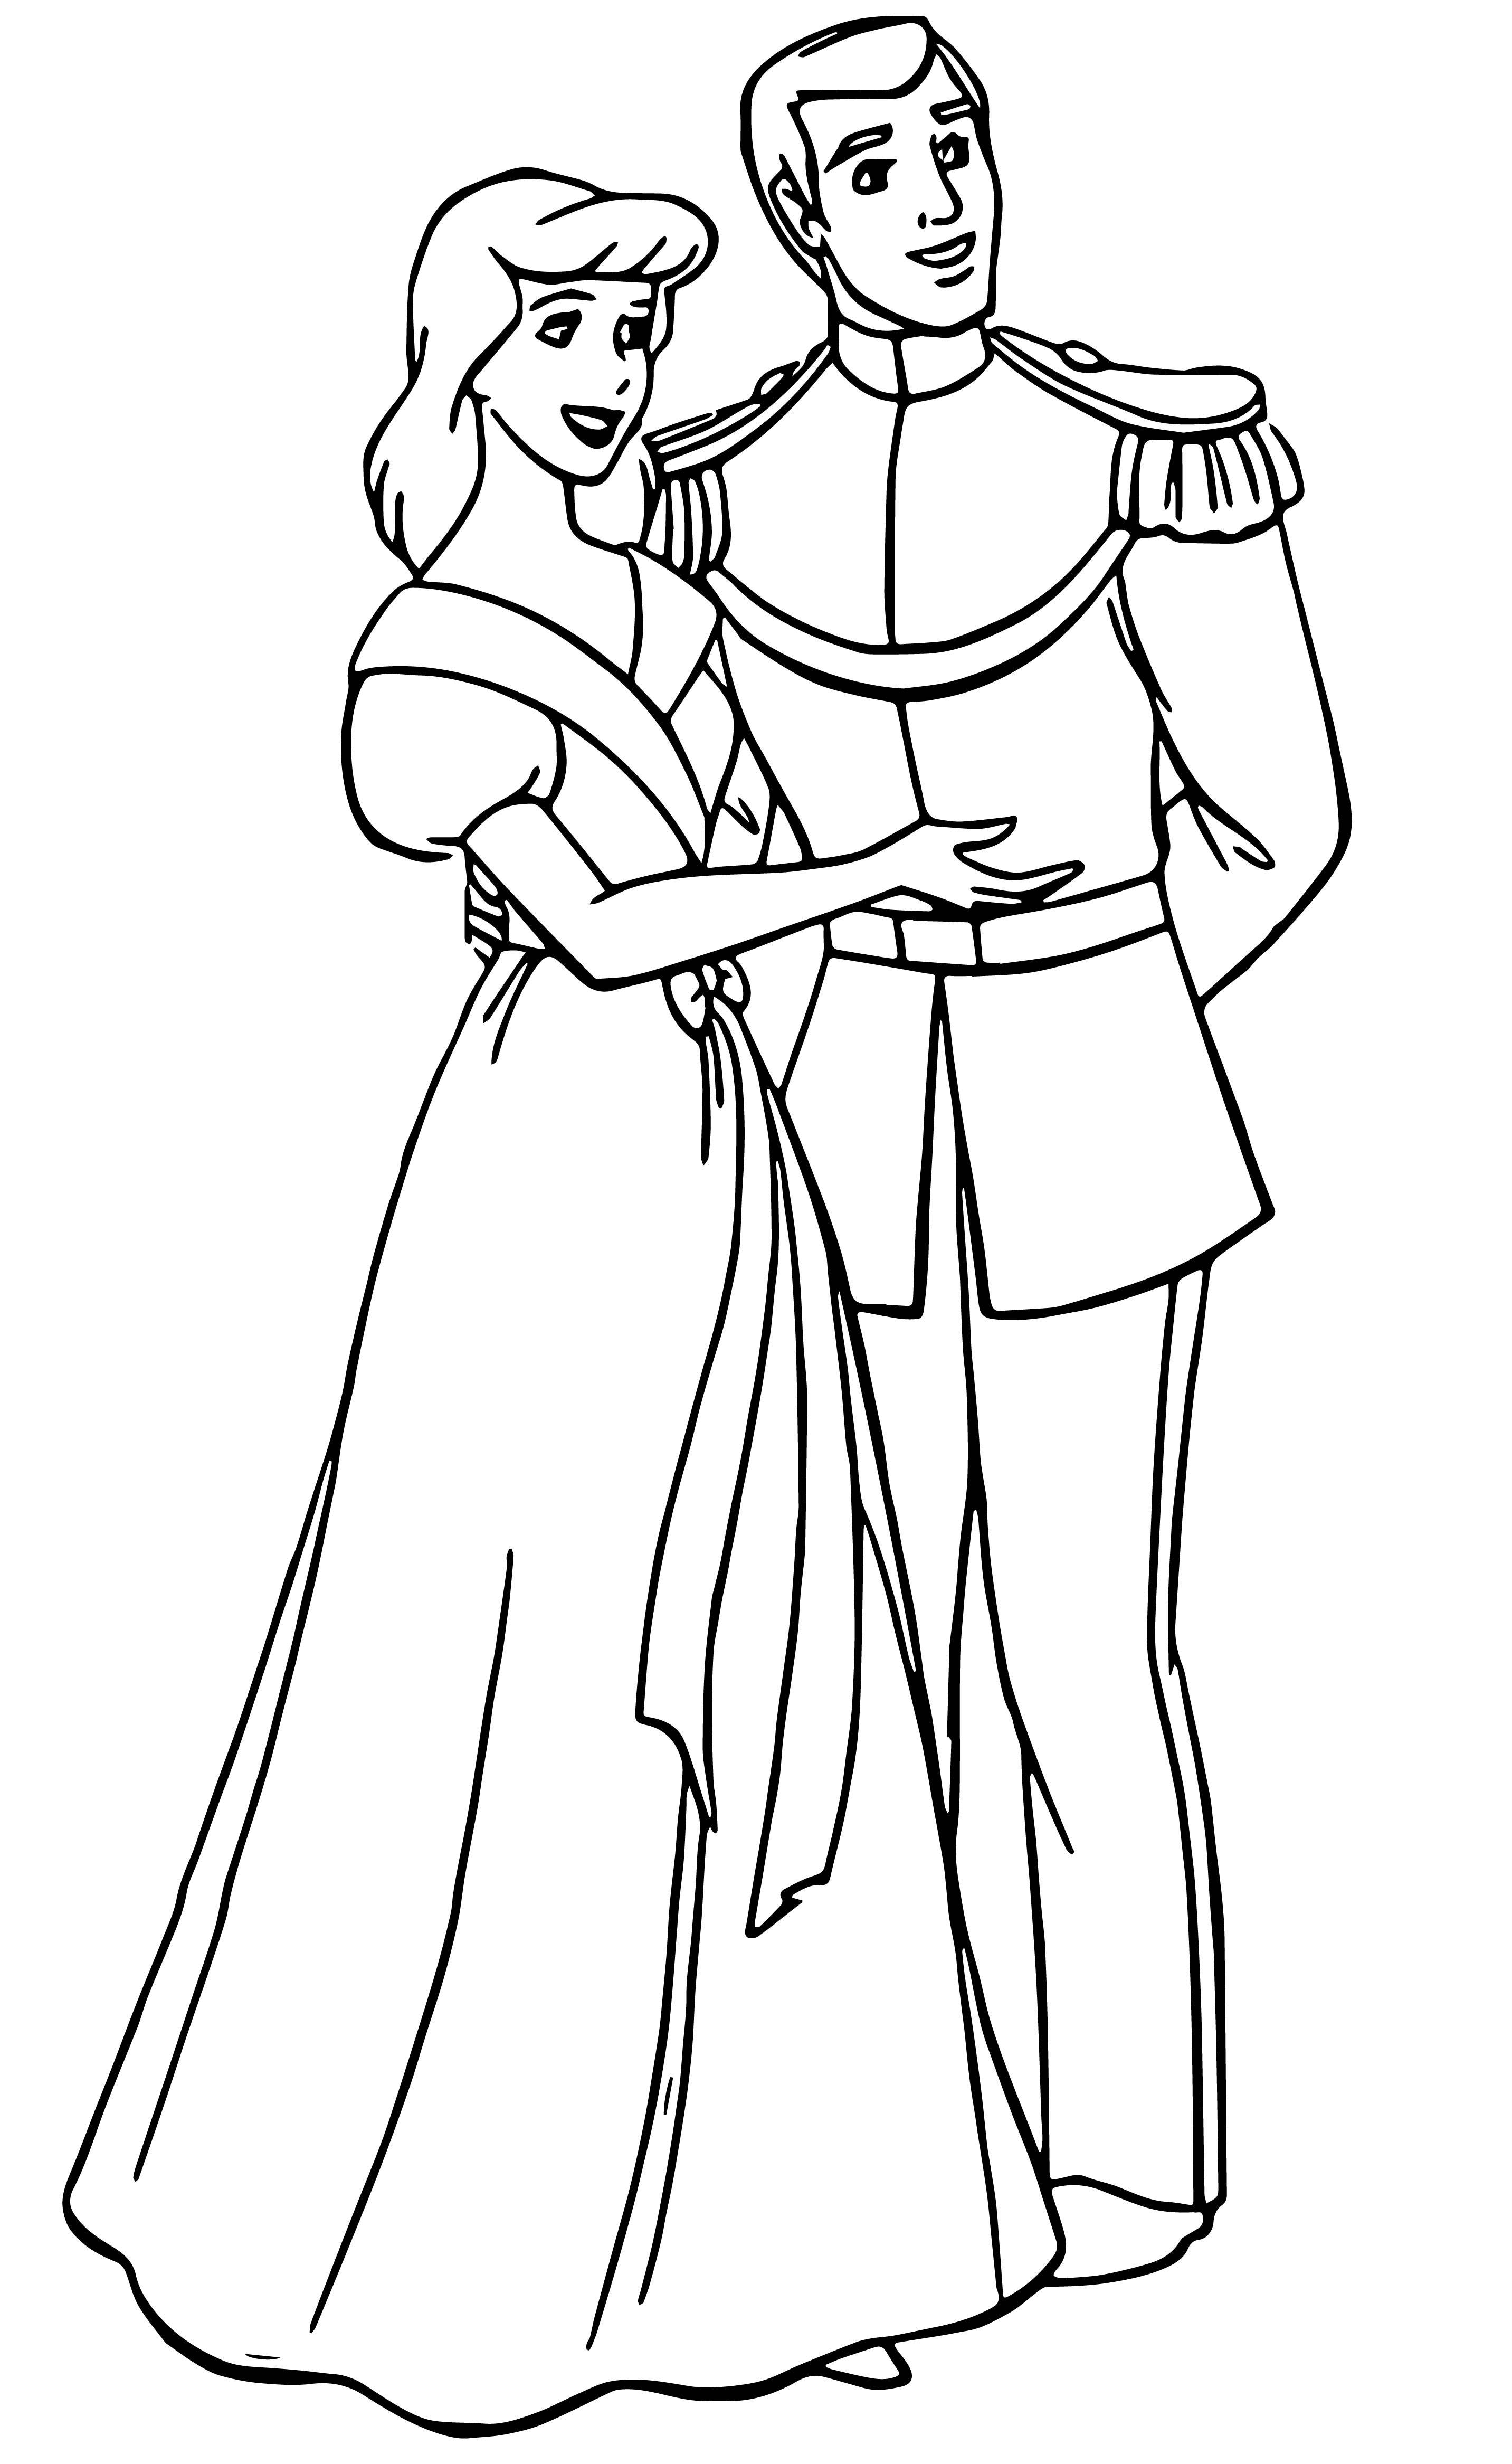 Cinderella And Prince Charming Coloring Pages 34 Wecoloringpage Com